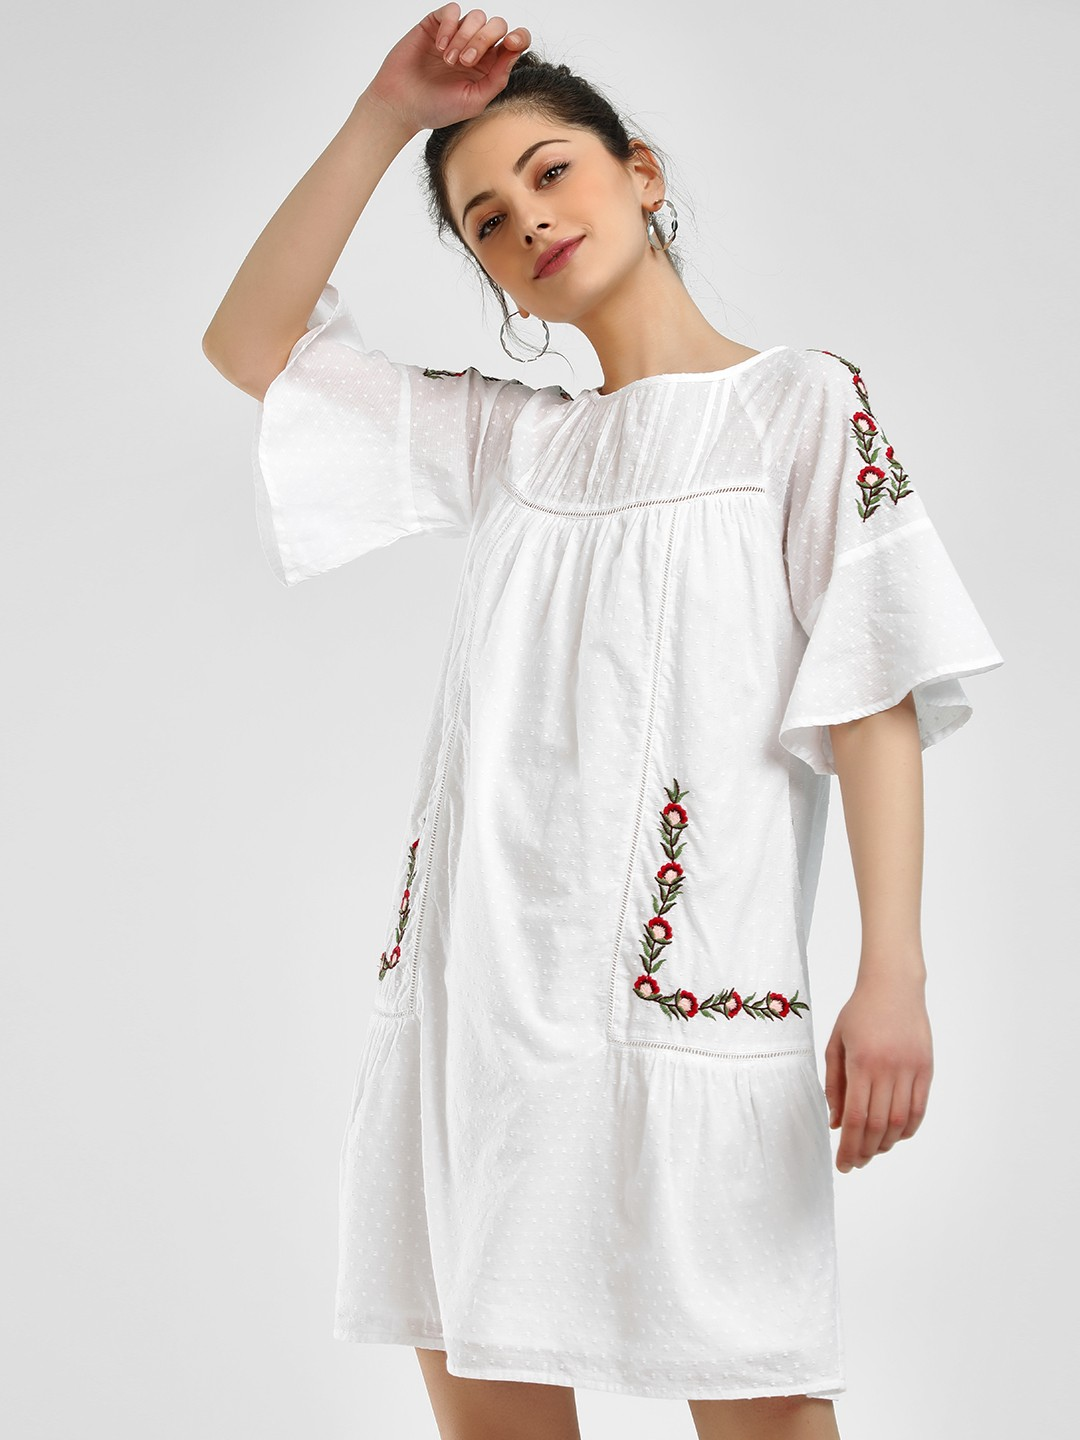 Sbuys White Dobby Floral Embroidered Shift Dress 1